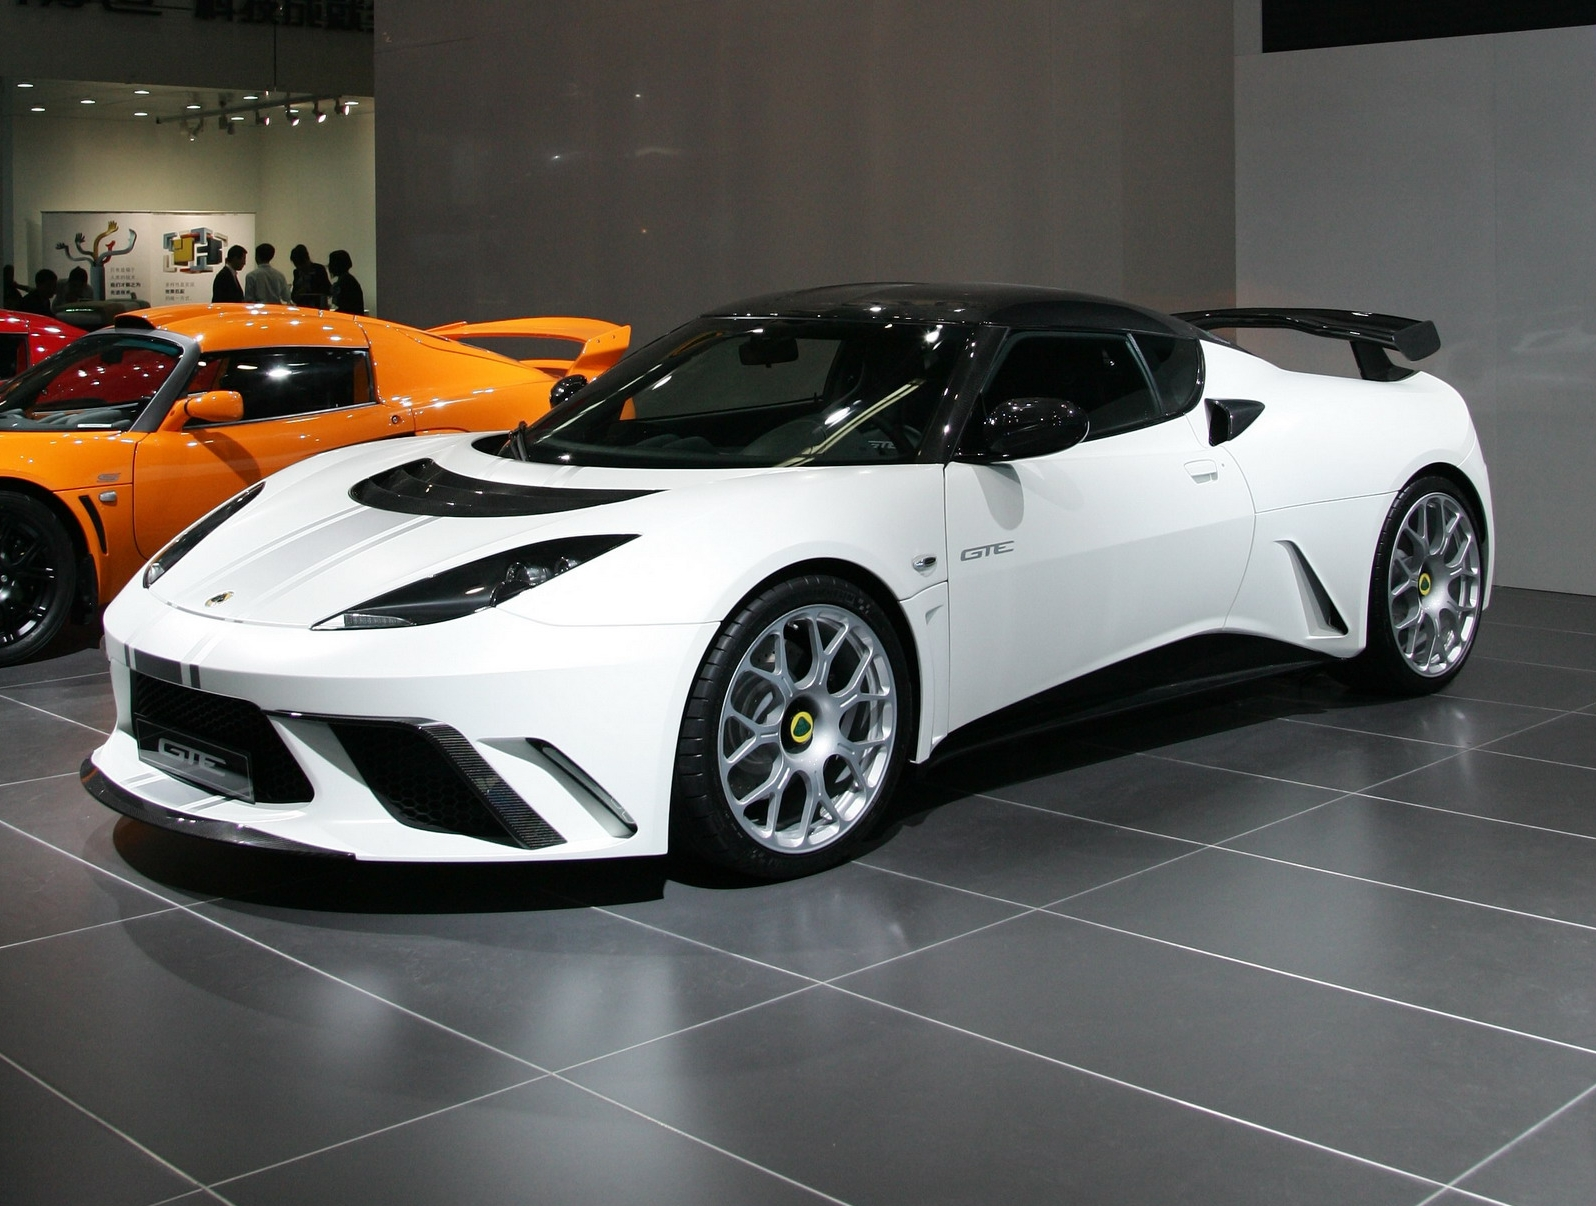 2012 Lotus Evora Gte China Limited Edition Review Top Speed